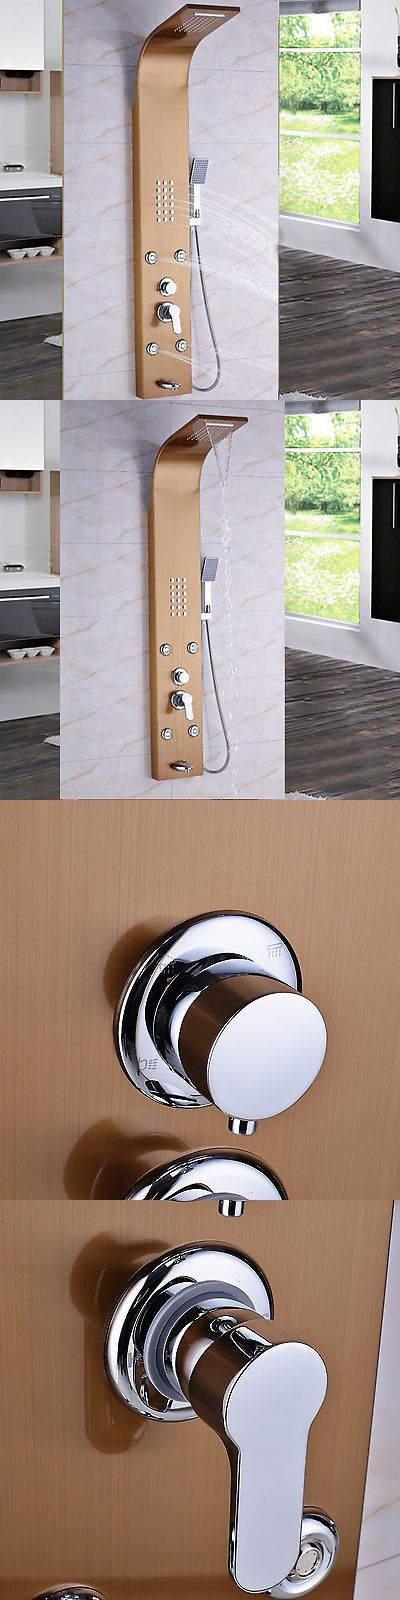 Shower Panels and Massagers 121849: Rose Gold Stainless Steel Rain Waterfall Shower Column Panel Body Jets Mixer Tap -> BUY IT NOW ONLY: $92 on eBay!